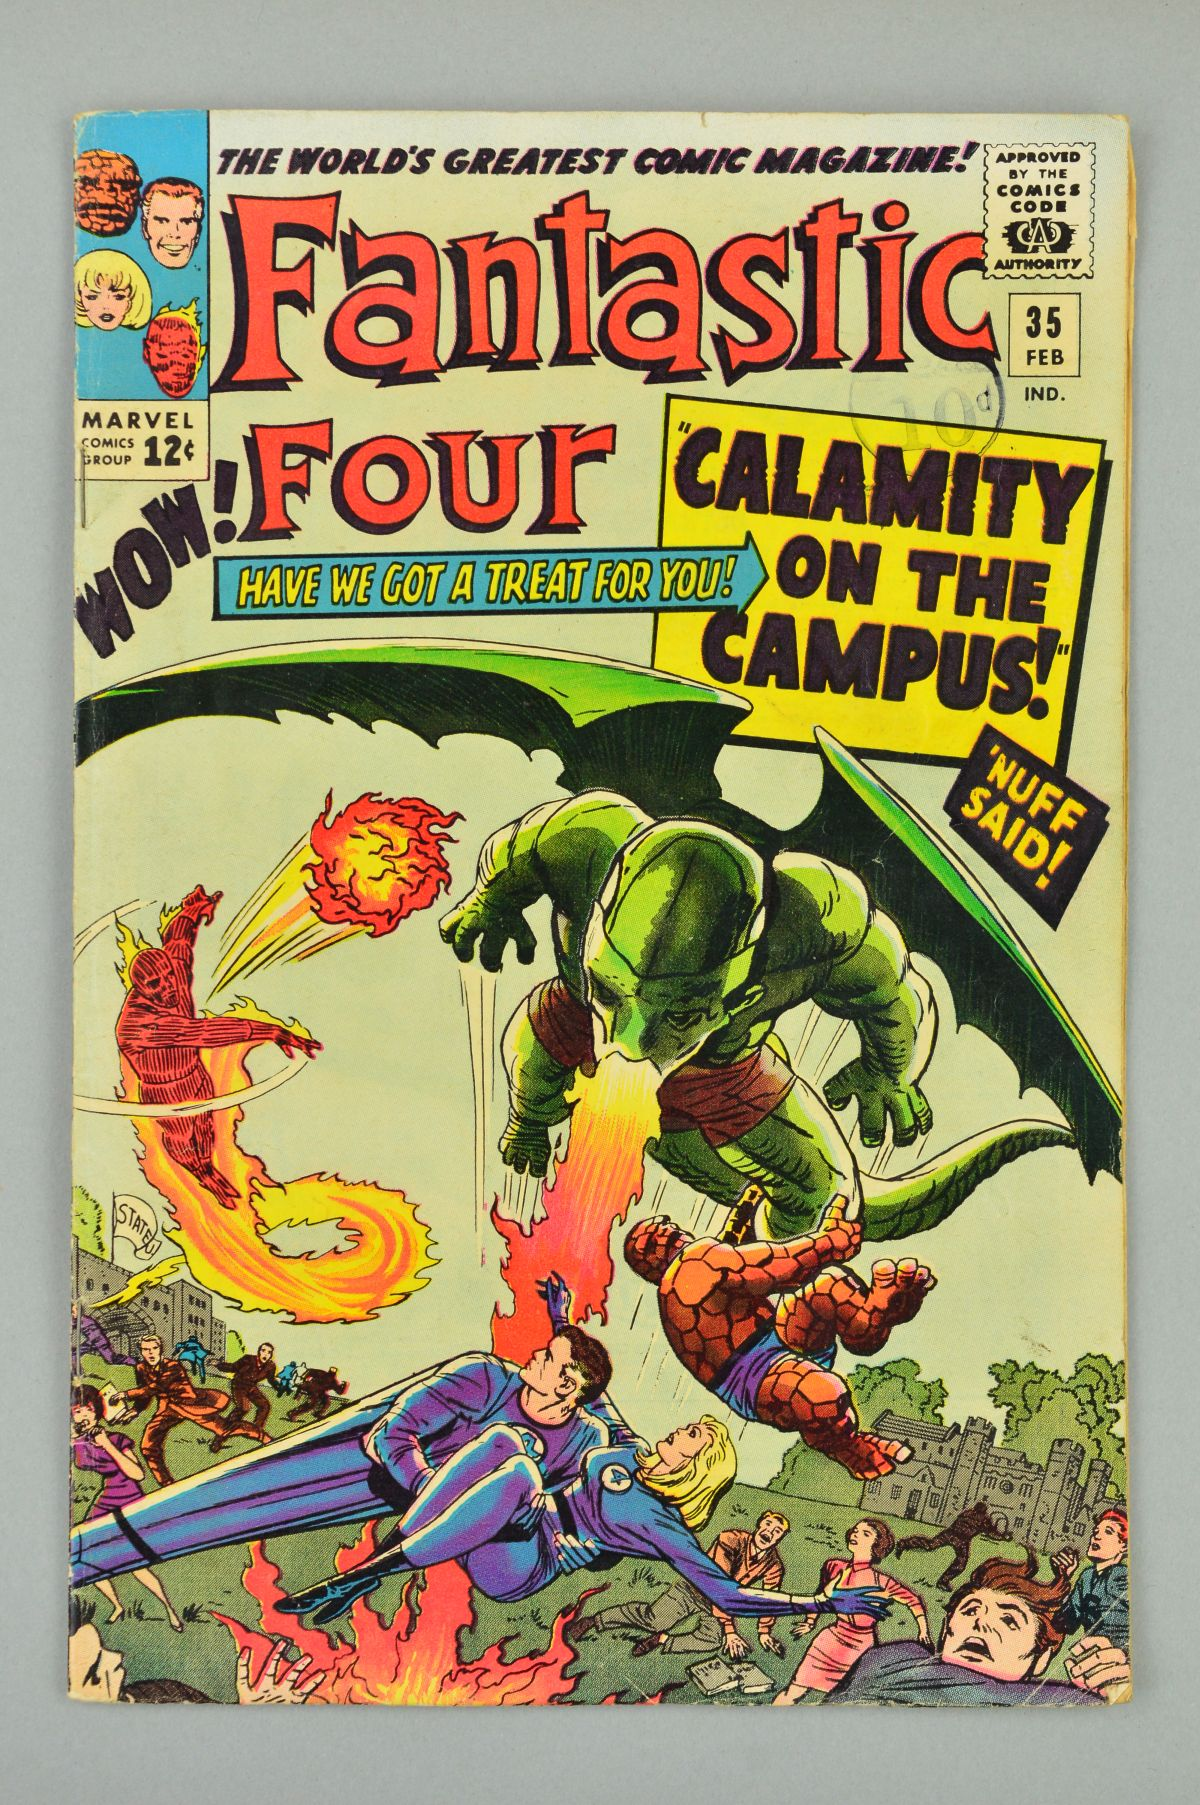 Lot 1834 - Fantastic Four (1961) #35, Published:February 10, 1965,Writer:Stan Lee, Penciller:Jack Kirby,